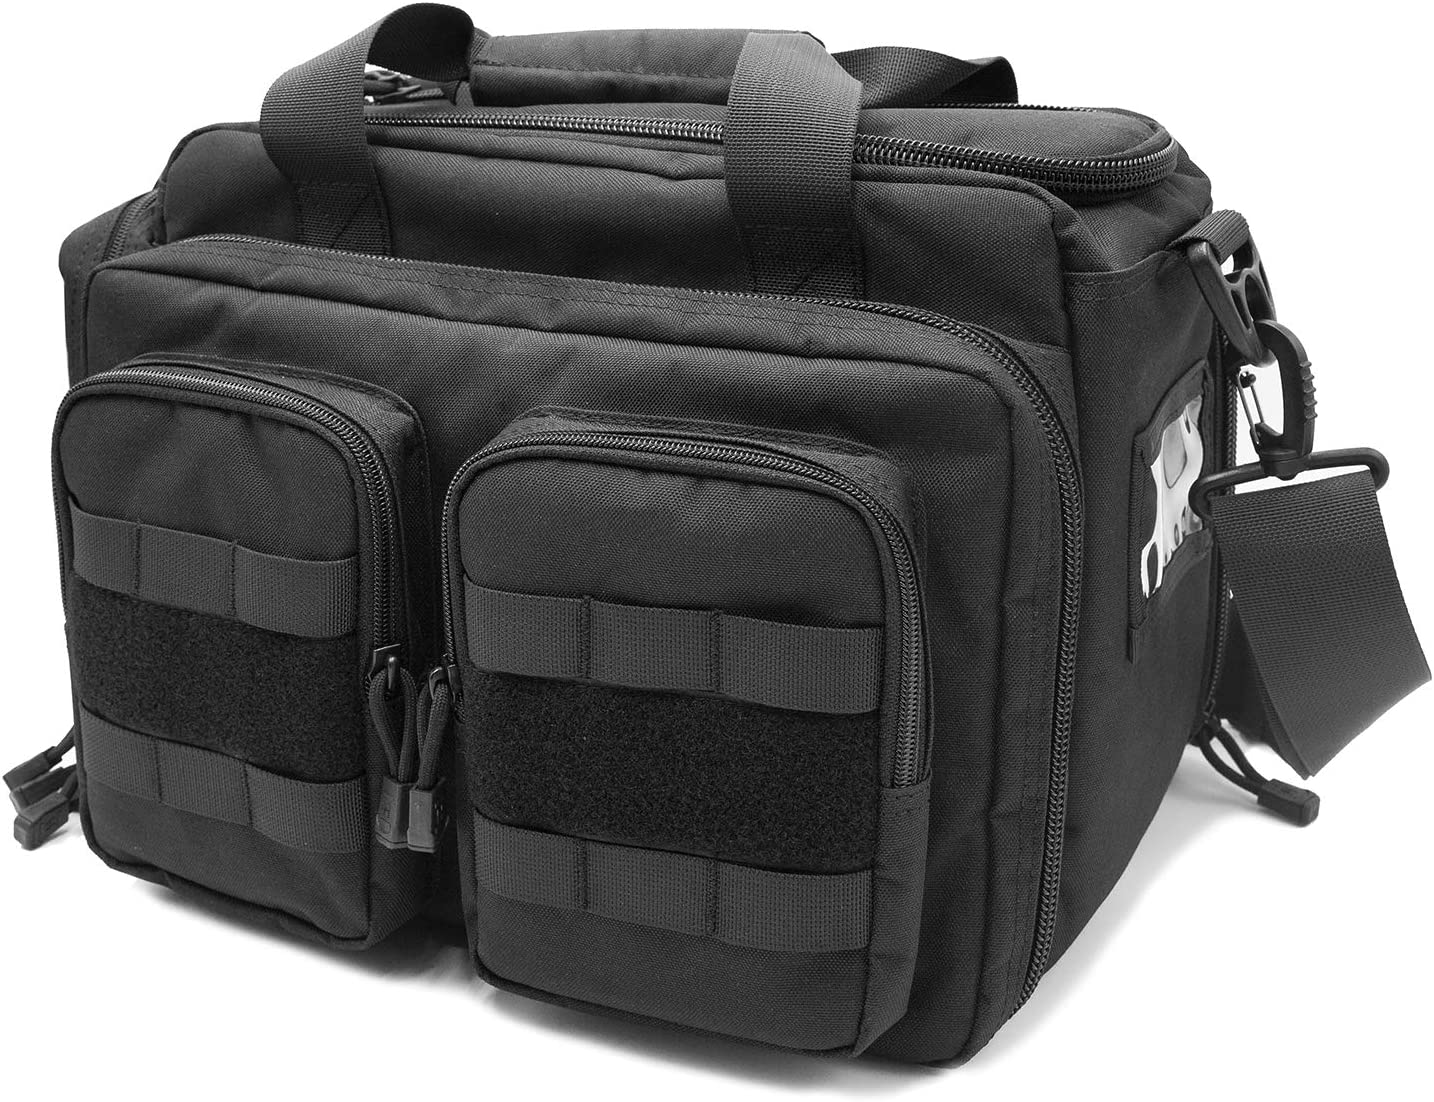 ProCase Tactical Gun Range Bag, Deluxe Pistol Shooting Range Duffle Bag Large Handguns Magazine Ammo Gear Accessories Pouch for Hunting Shooting Range Sport -Black